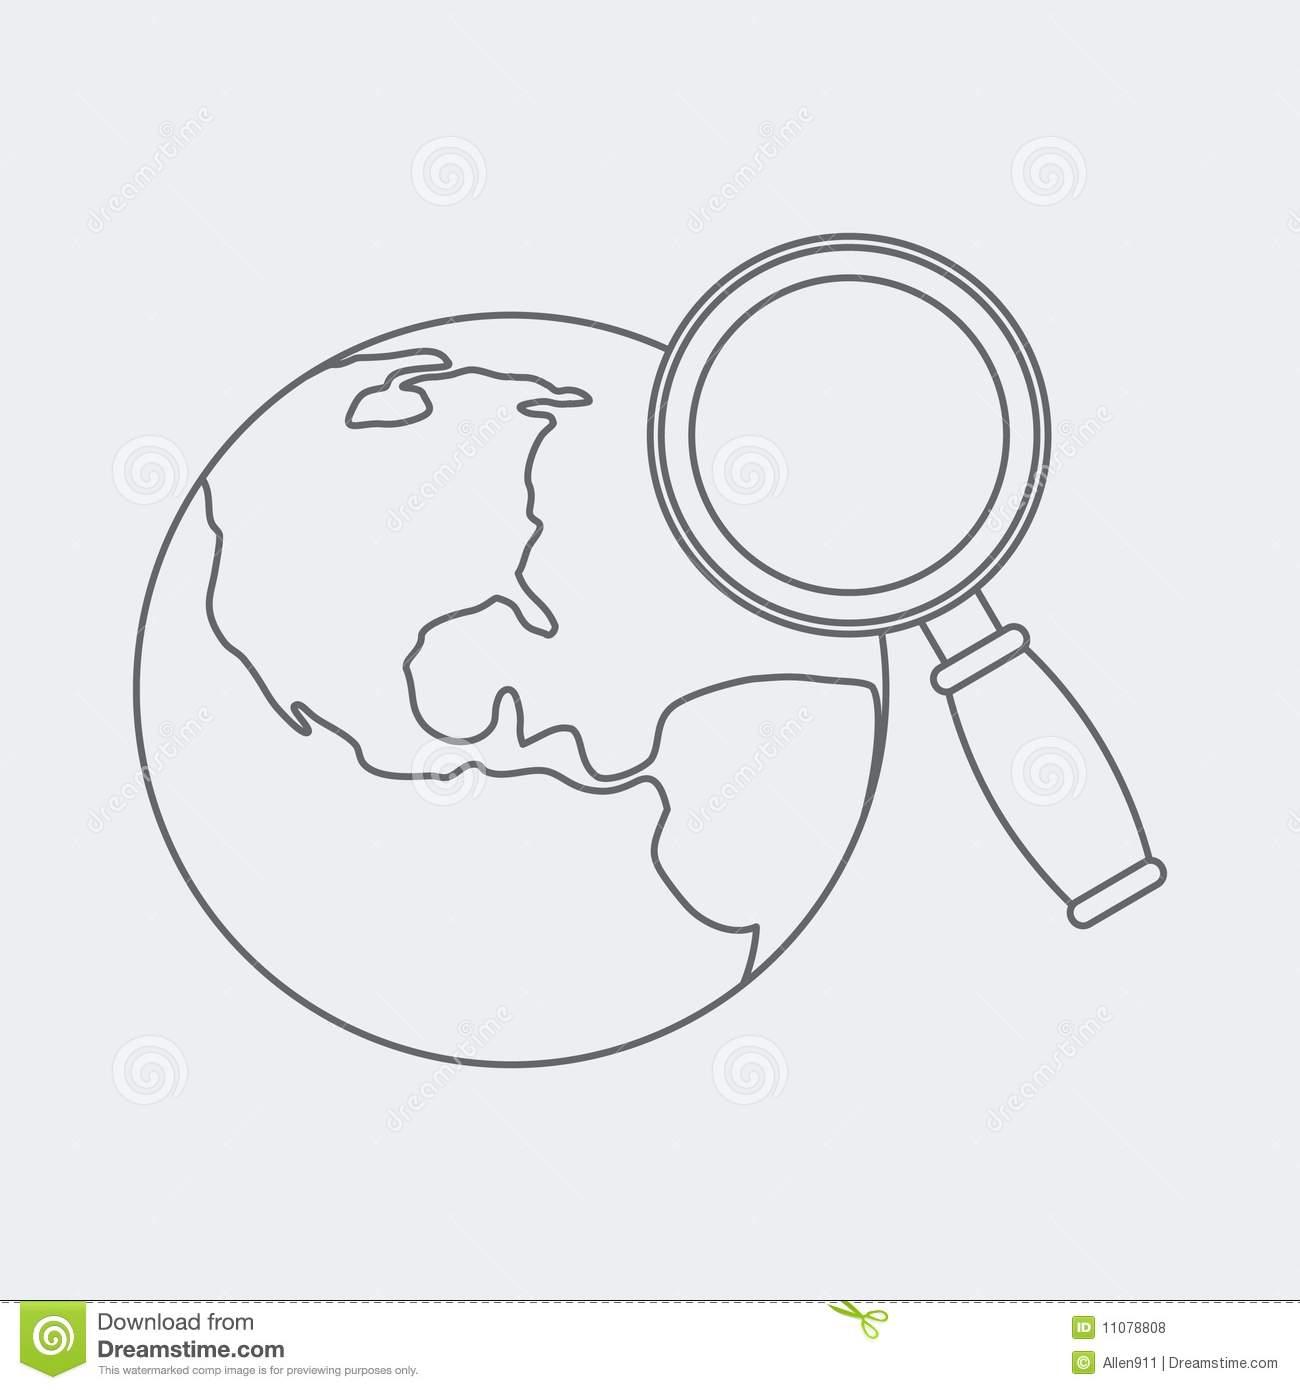 Worldwide web search sketch stock vector image 11078808 for Easy drawing websites